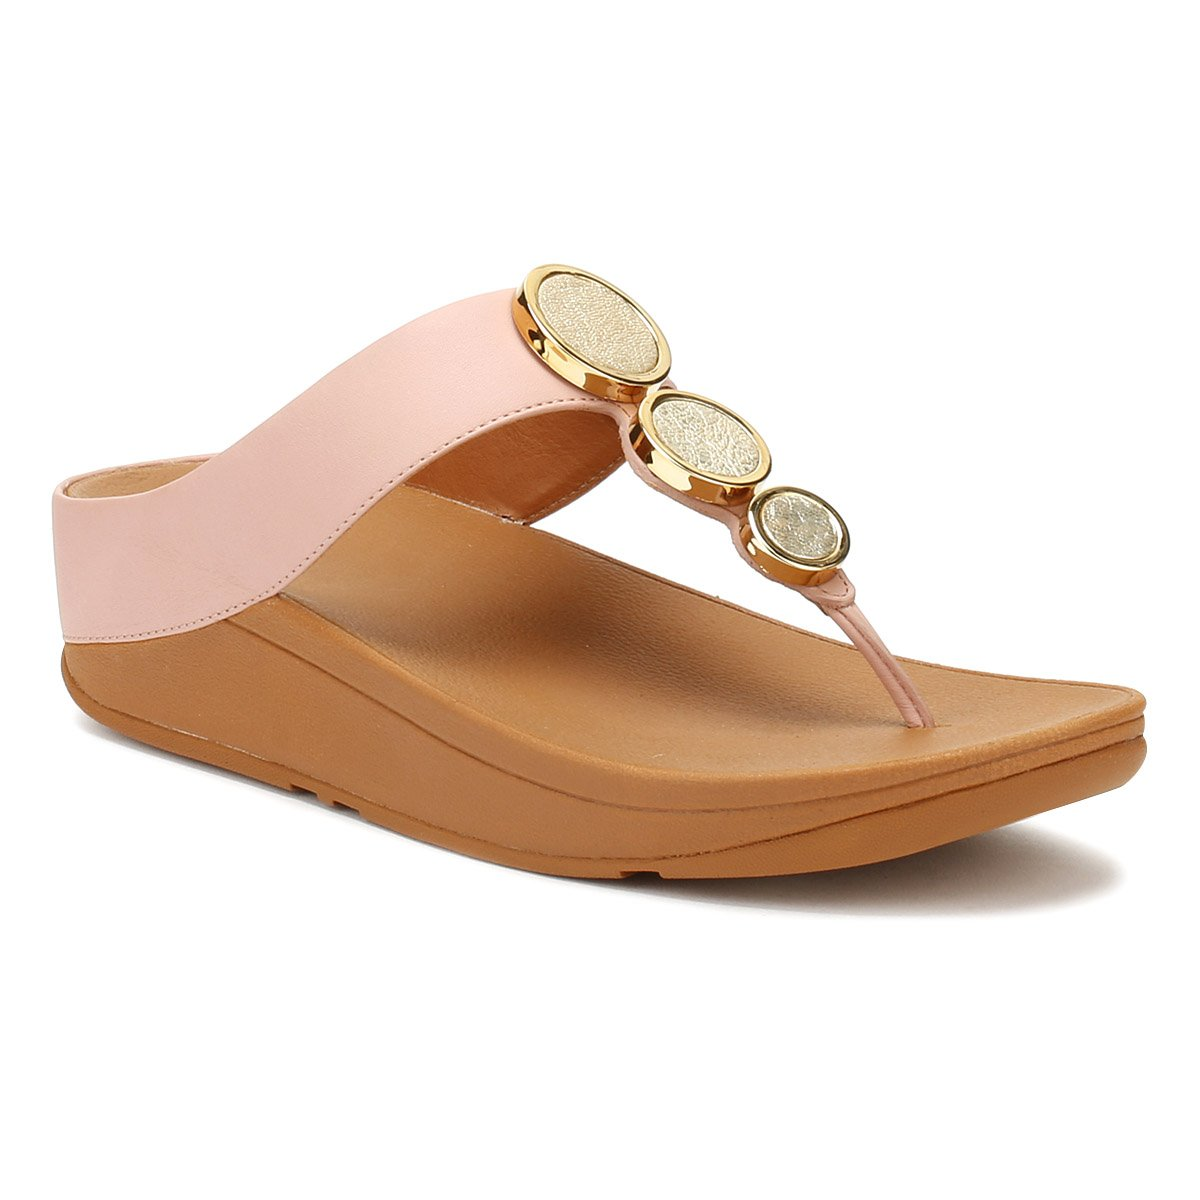 Pink Post Halo Dusky Toe B0093wokp2 Sandals Fitflop wIp16qEw